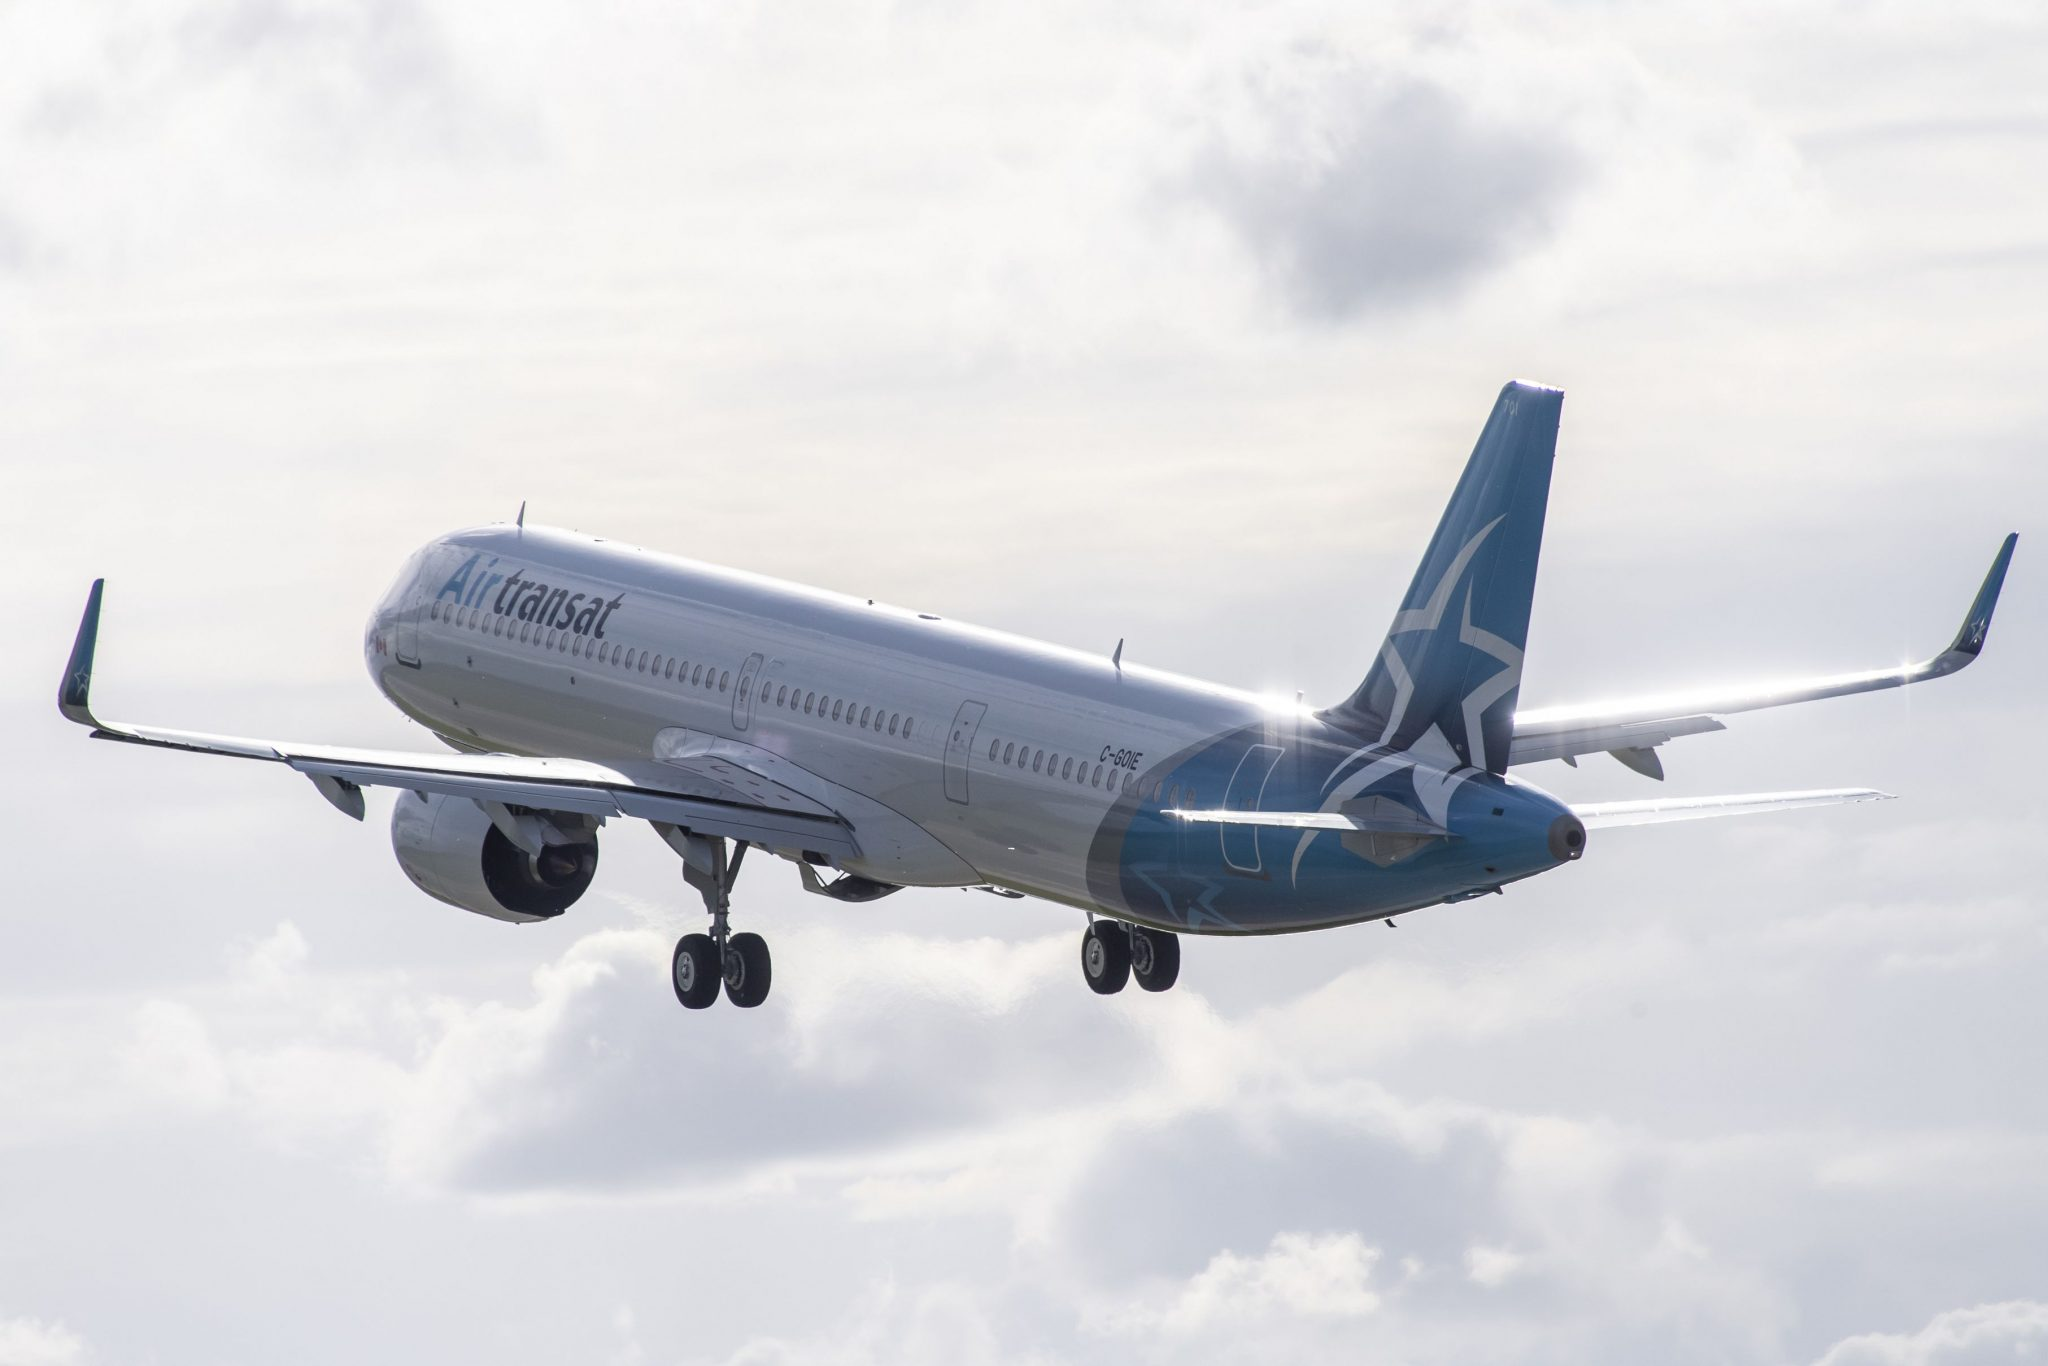 Canada's Air Transat To Serve 40 Destinations This Winter